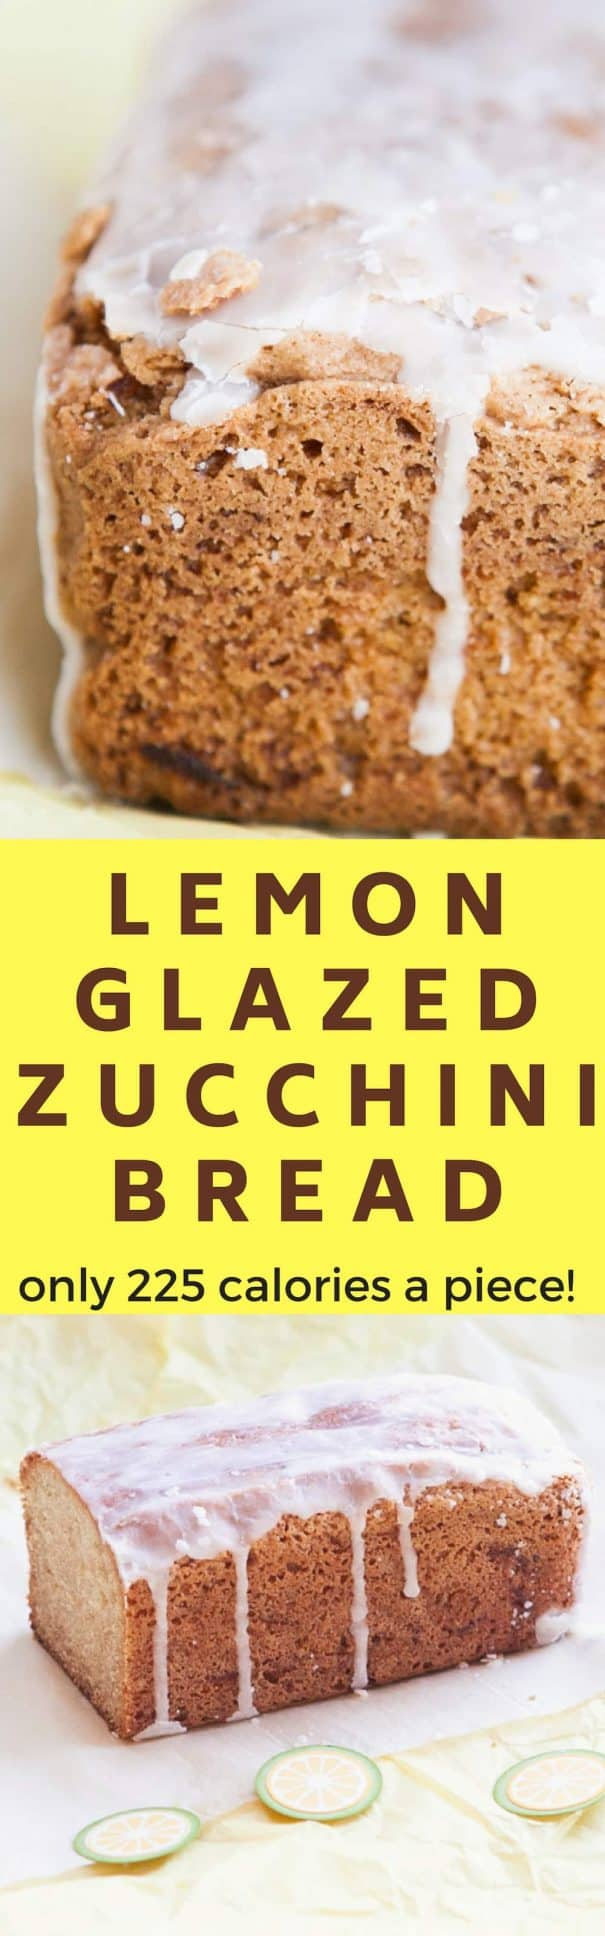 RECIPE for the BEST fluffy and moistLemon Glazed Zucchini Bread! There's 2 cups of grated fresh zucchini baked into this easy to make beautiful bread. On topthere's alemon powdered sugar glaze which everyone will love!